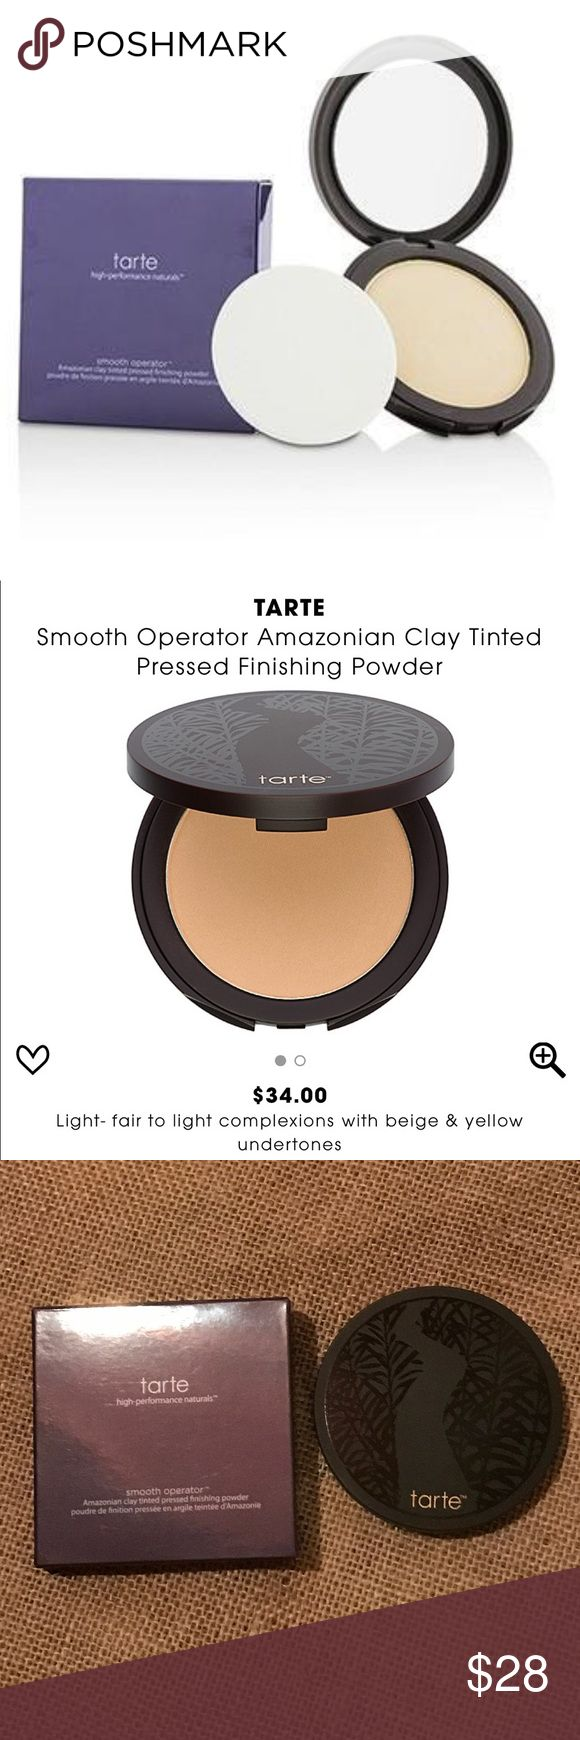 TARTE SMOOTH OPERATOR AMAZONIAN FINISHING POWDER TARTE Smooth Operator Amazonian Clay Tinted Pressed Finishing Powder In Light. This whisper-light mineral pressed powder allows skin to breathe while treating it with soothing vitamins and minerals. This powder contains Skinvigorating™ ingredients vitamins A and E, antioxidants that fight free radical damage, and mineral pigments, known for soothing and softening properties. No Parabens, Sulfates & Phthalates. The box has some wear to it but…